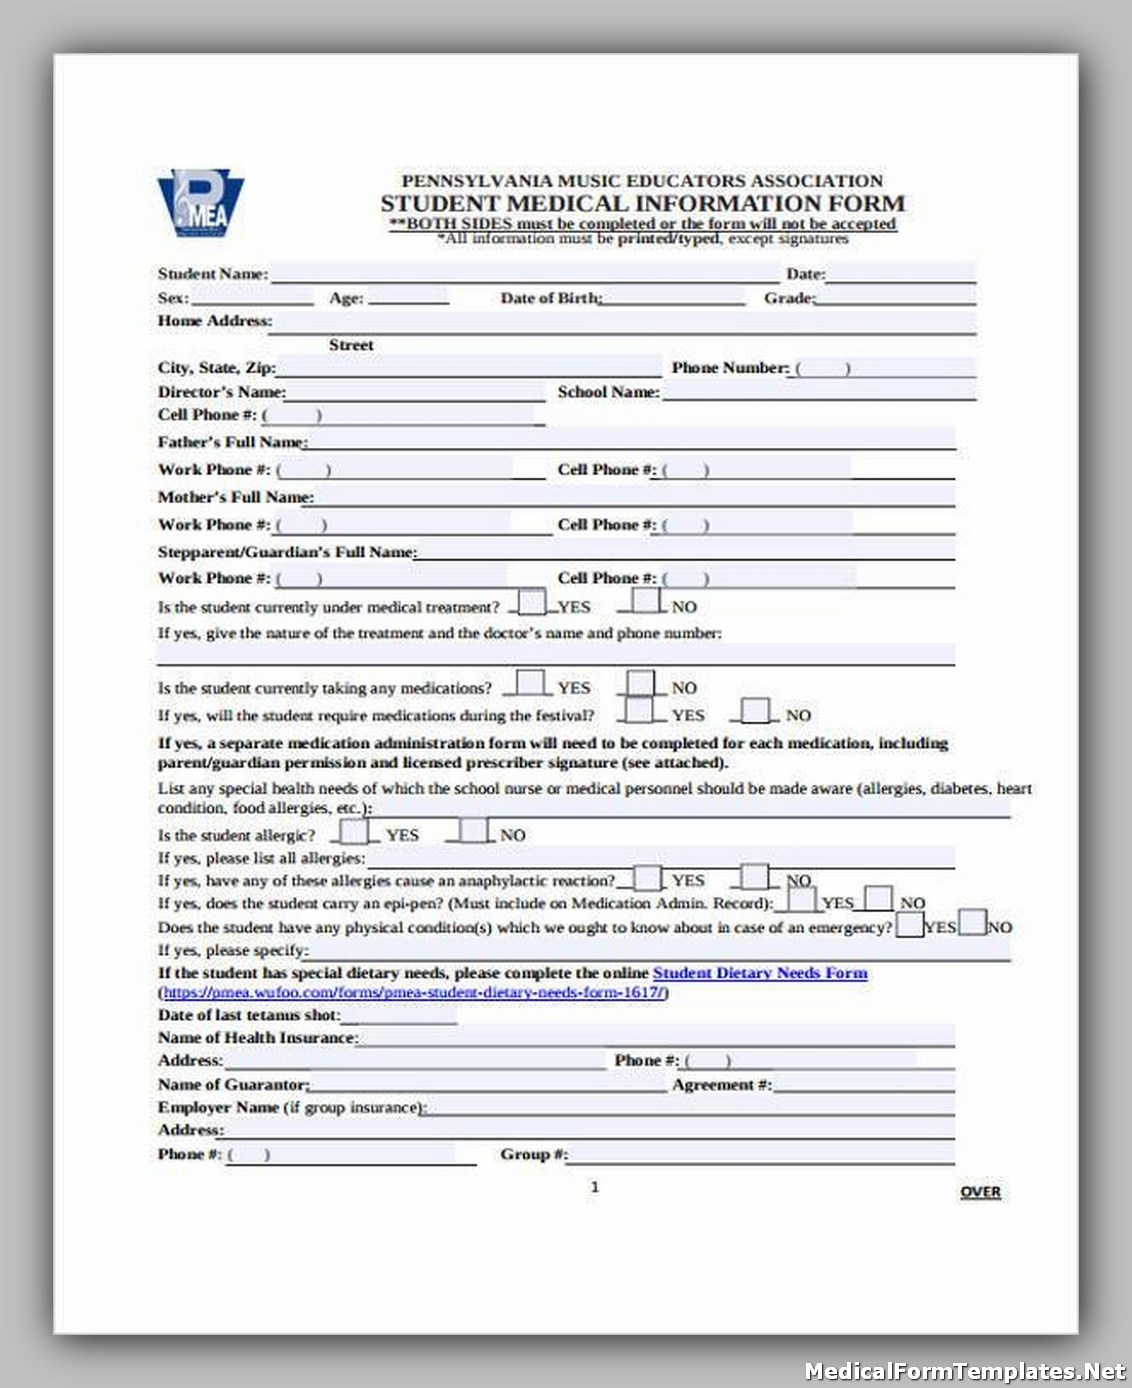 Student Medical Information Form1